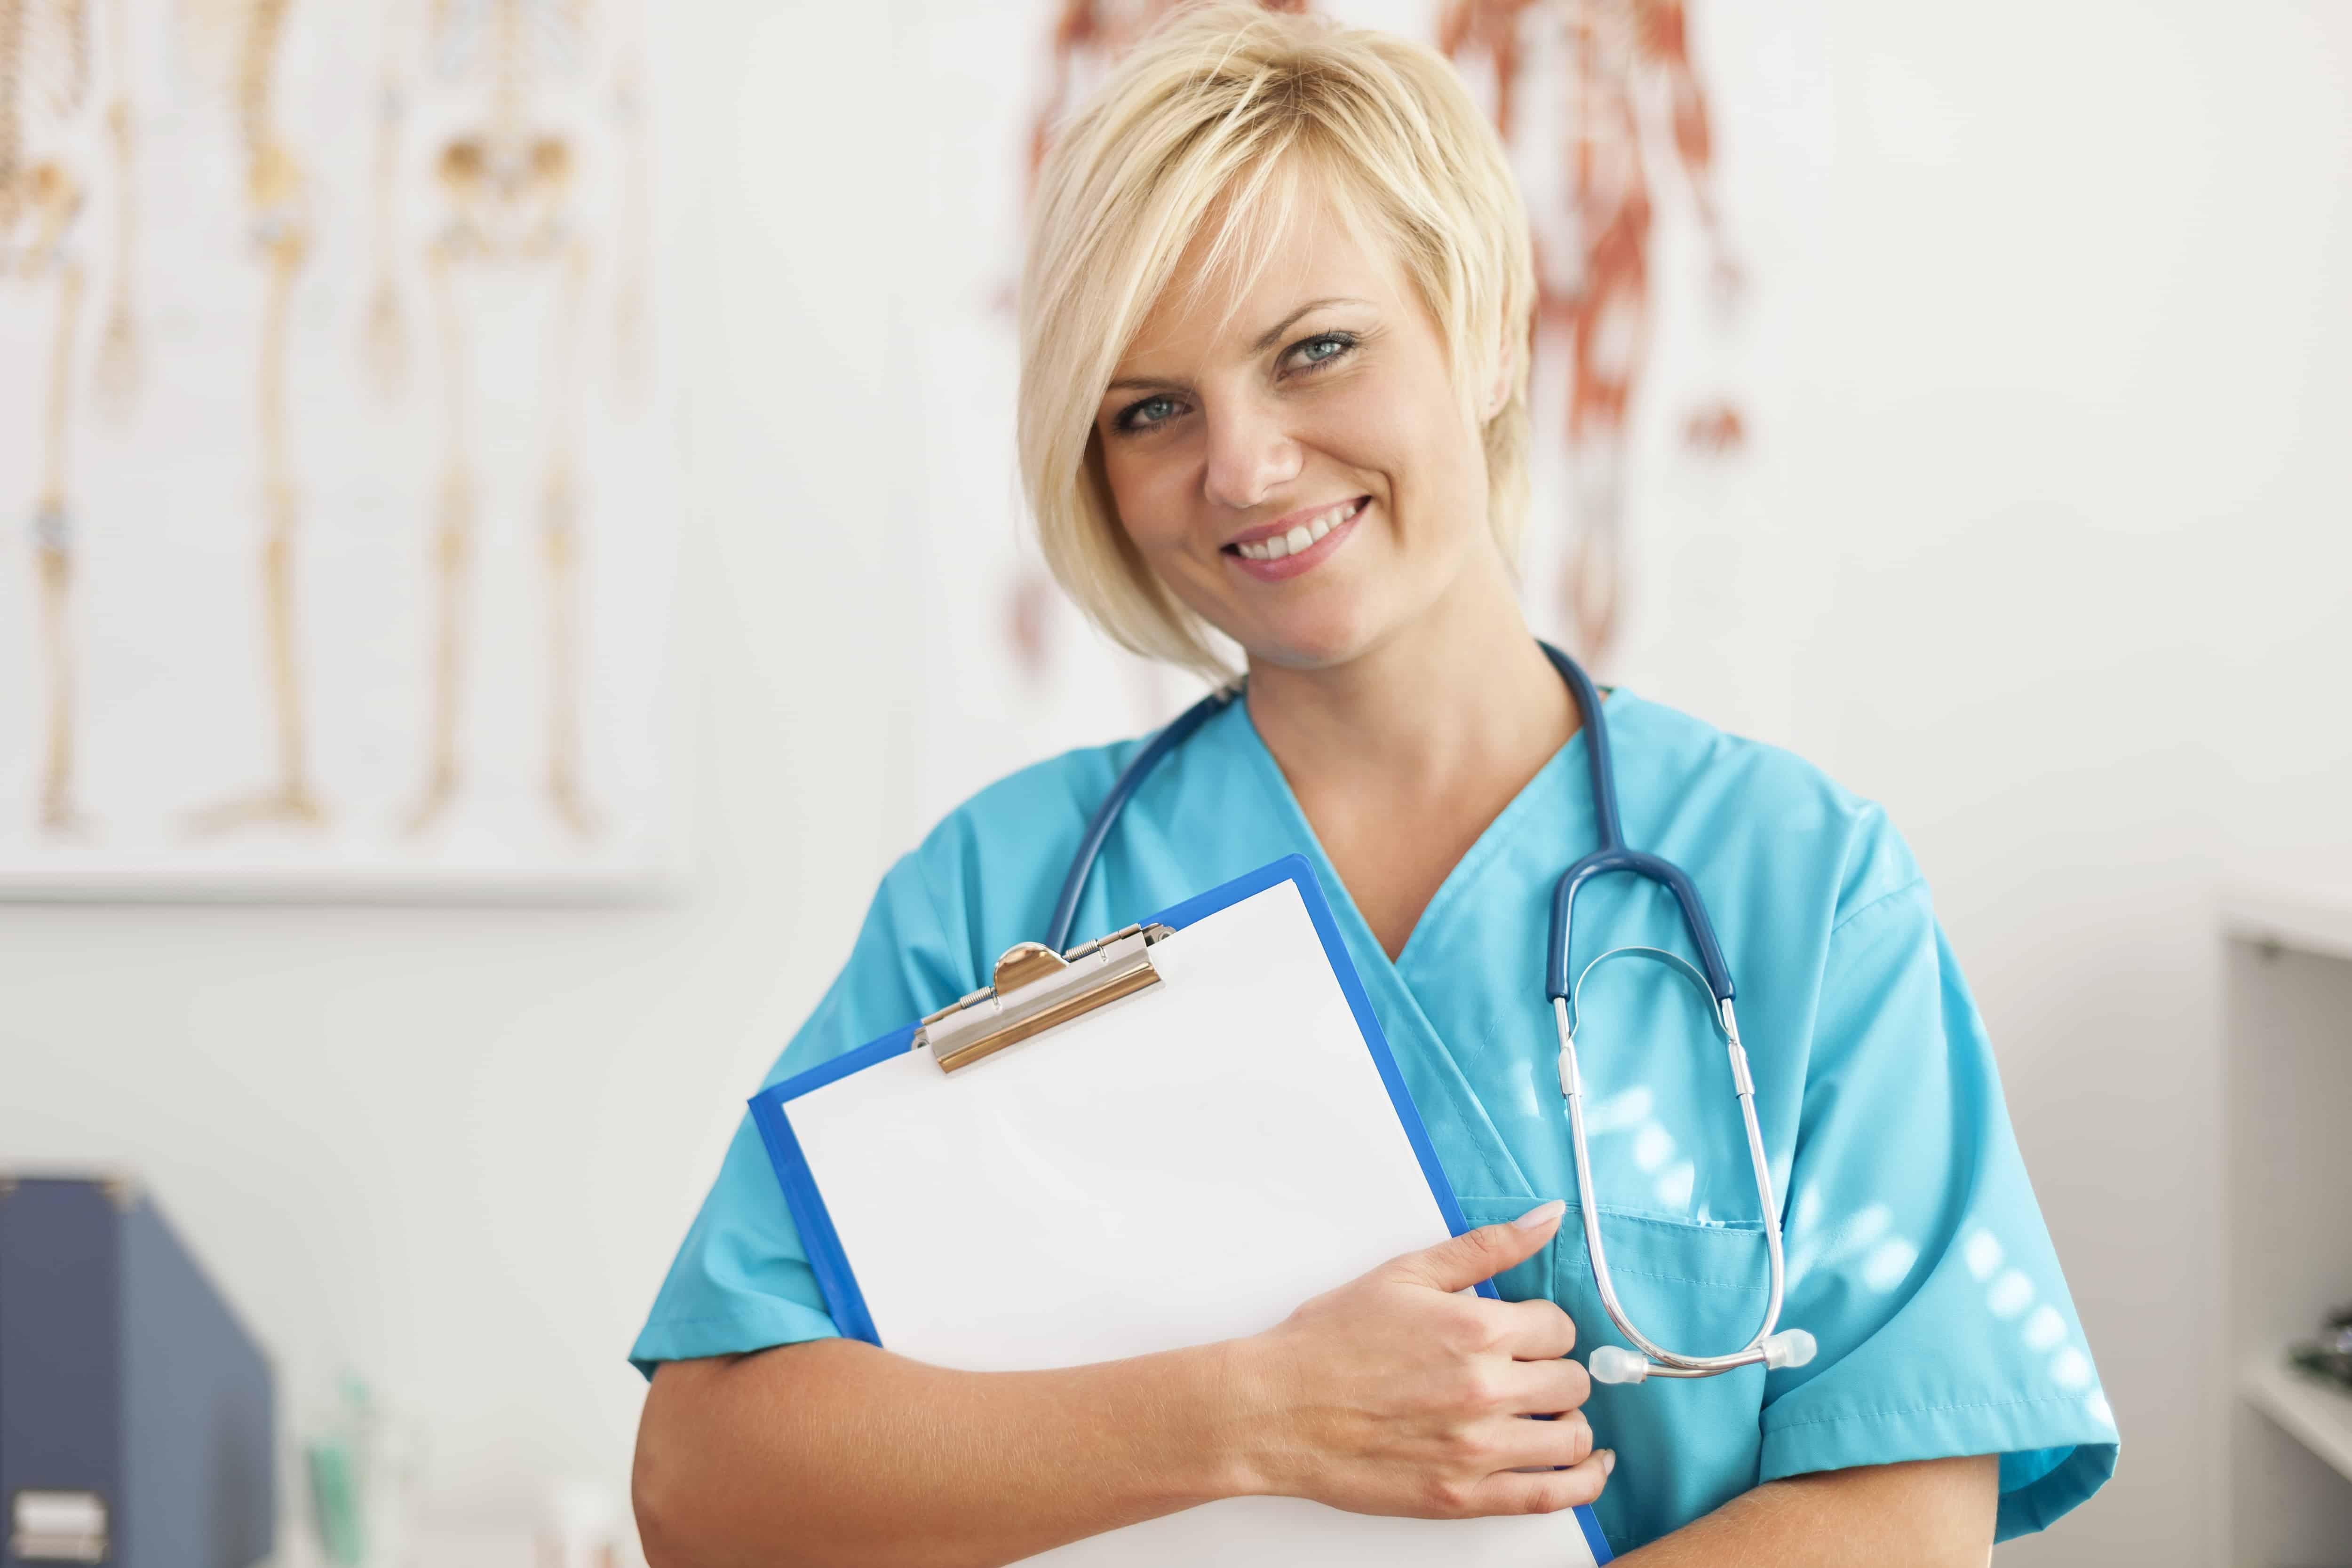 Anthem Home-Based NSG Clinical Review Nurse Jobs in the U.S.